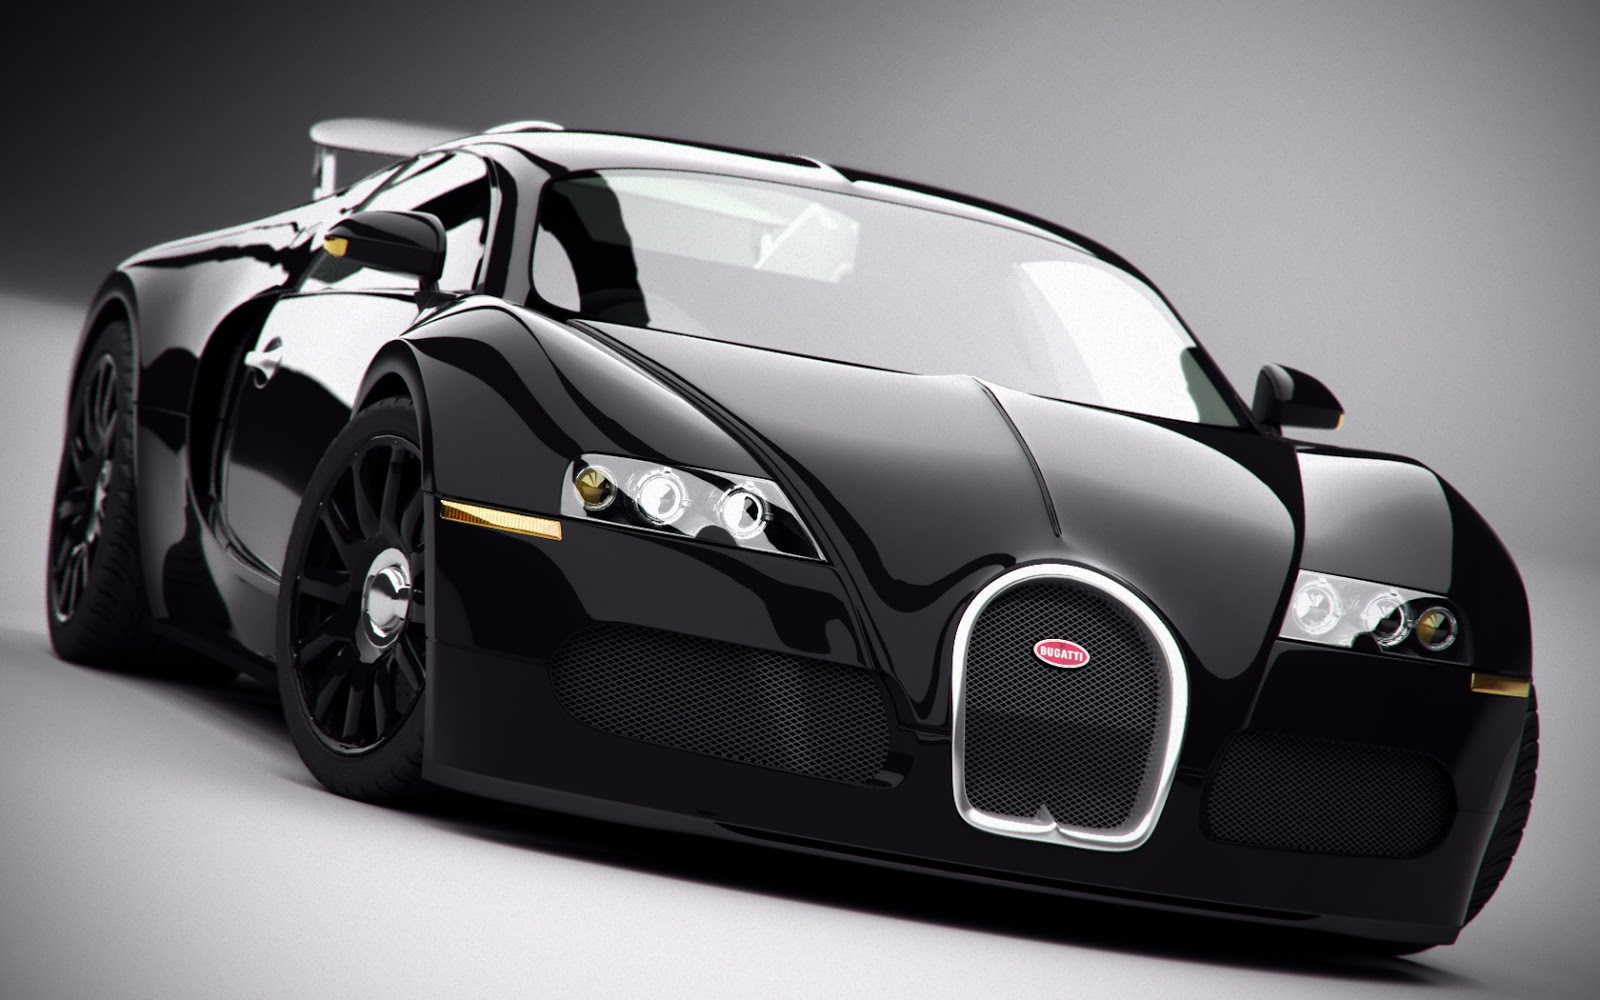 Perfect Hd Car Wallpapers,car Image,sports Car Wallpapers,car Wallpaper,3d Bugatti